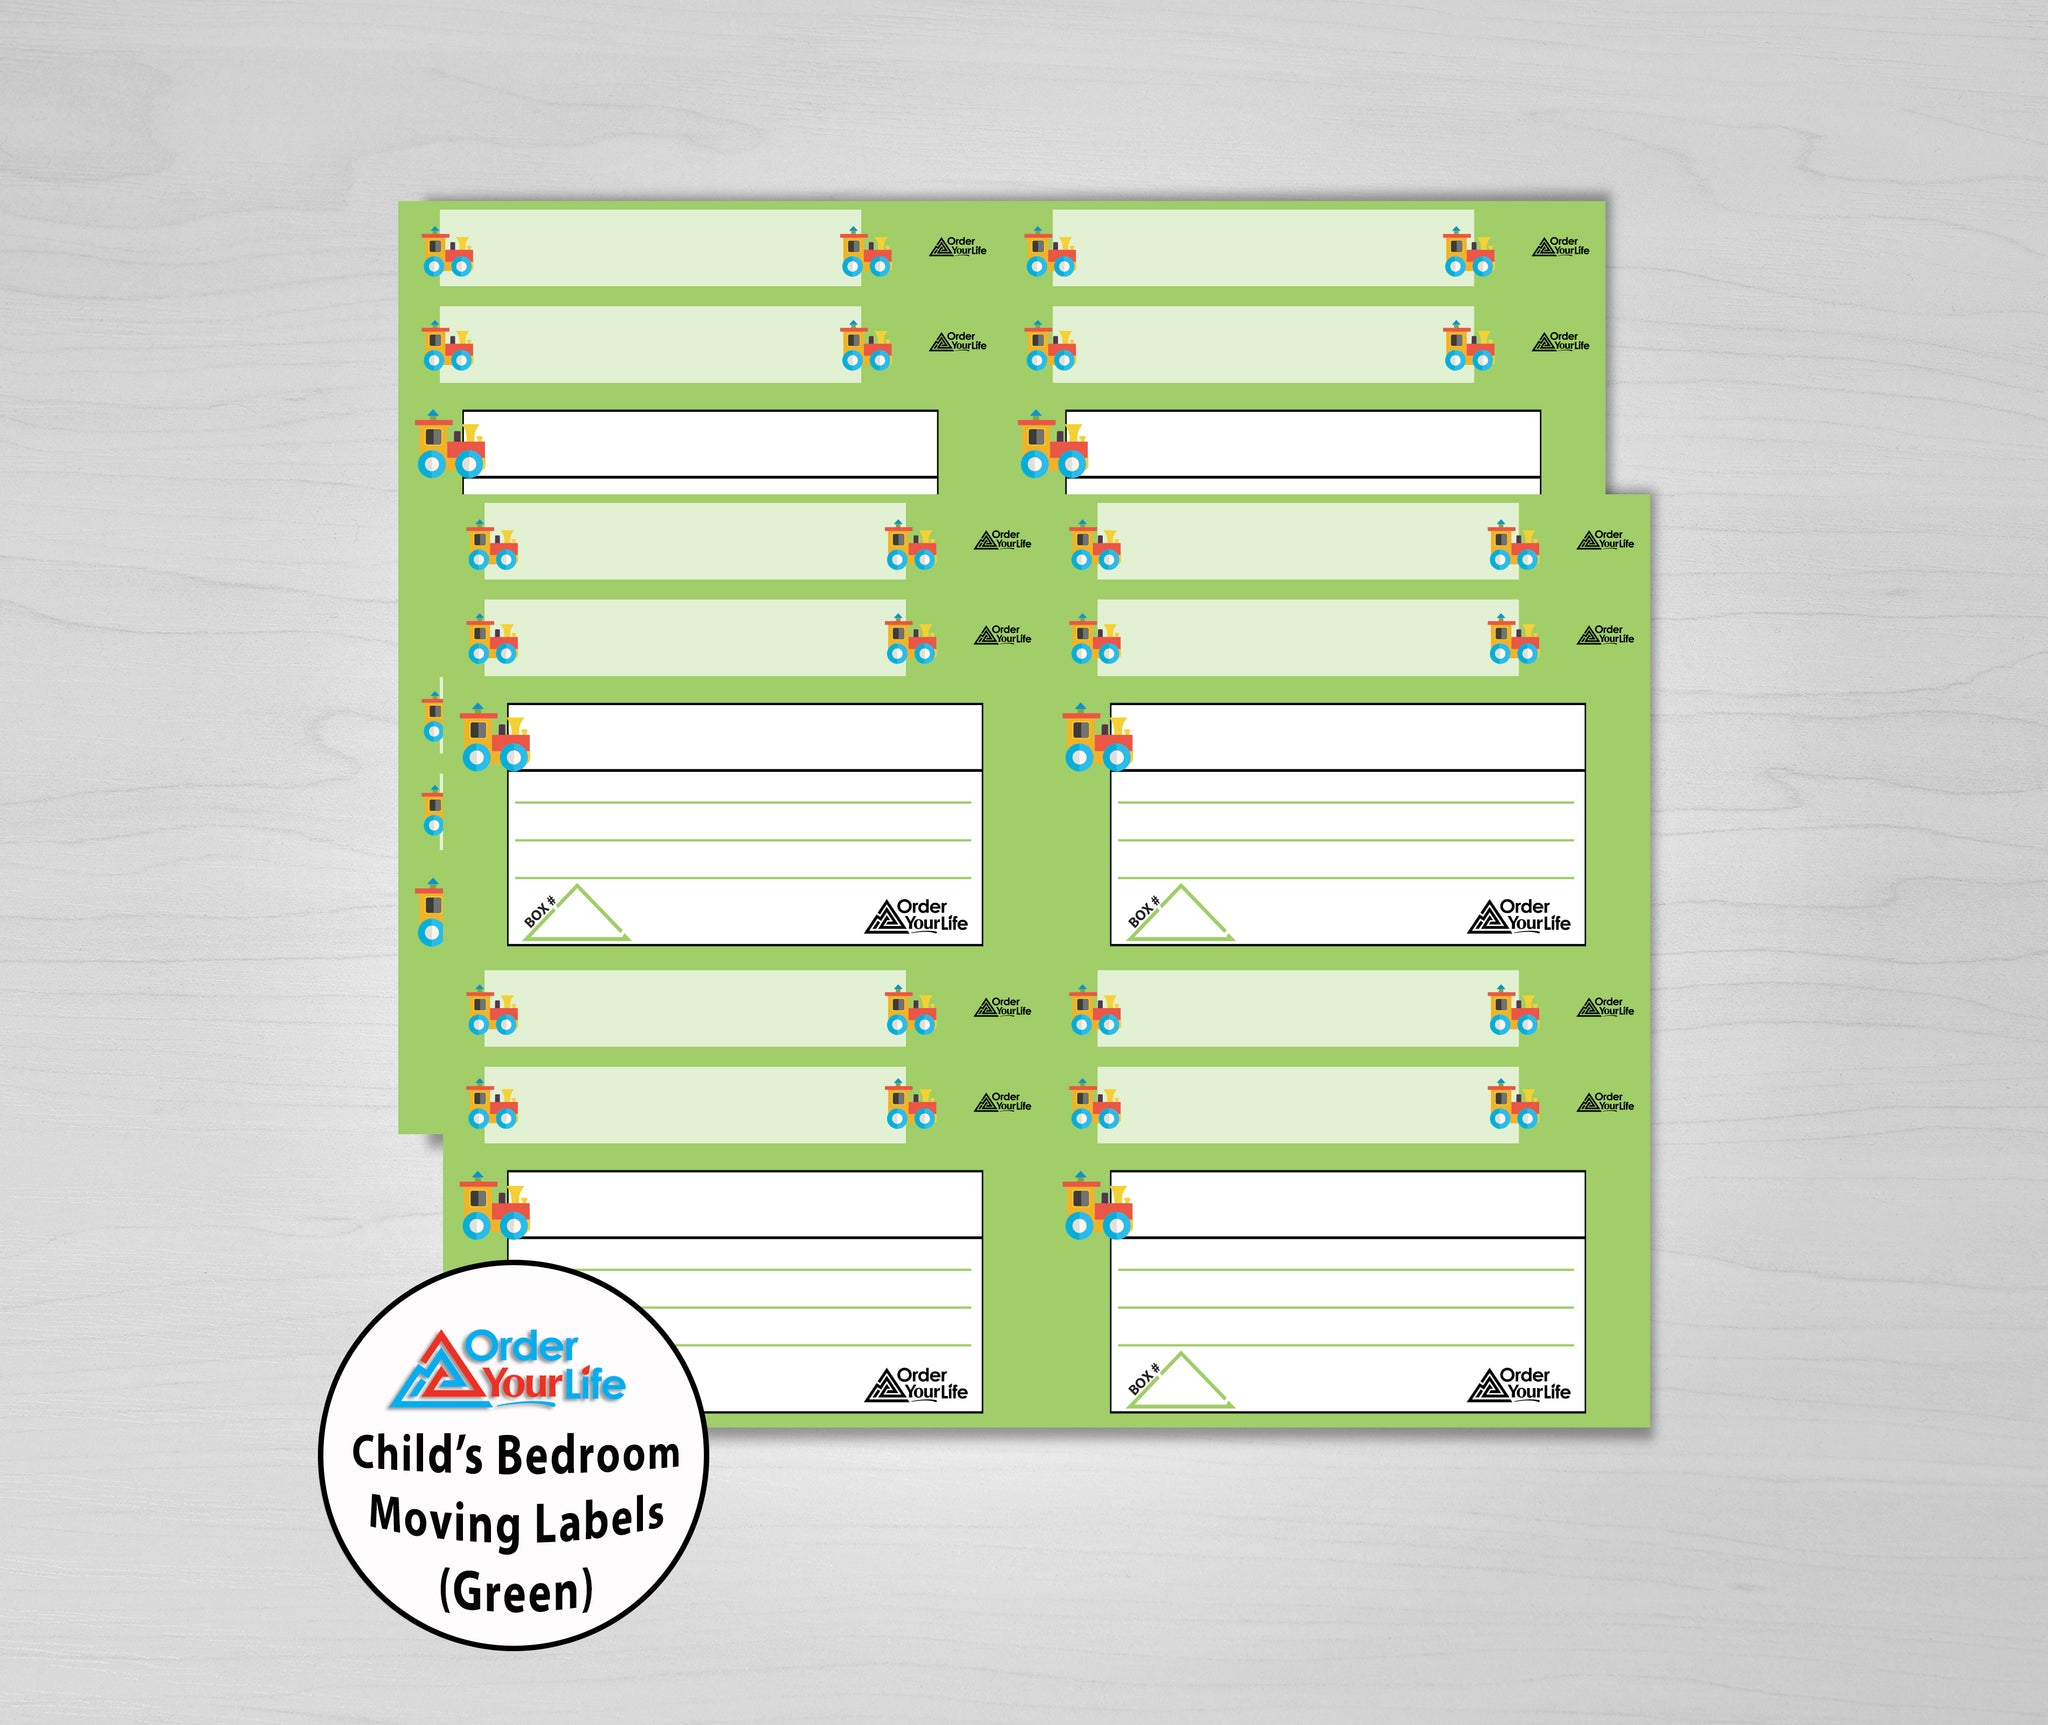 Child's Room Moving Labels (Green)